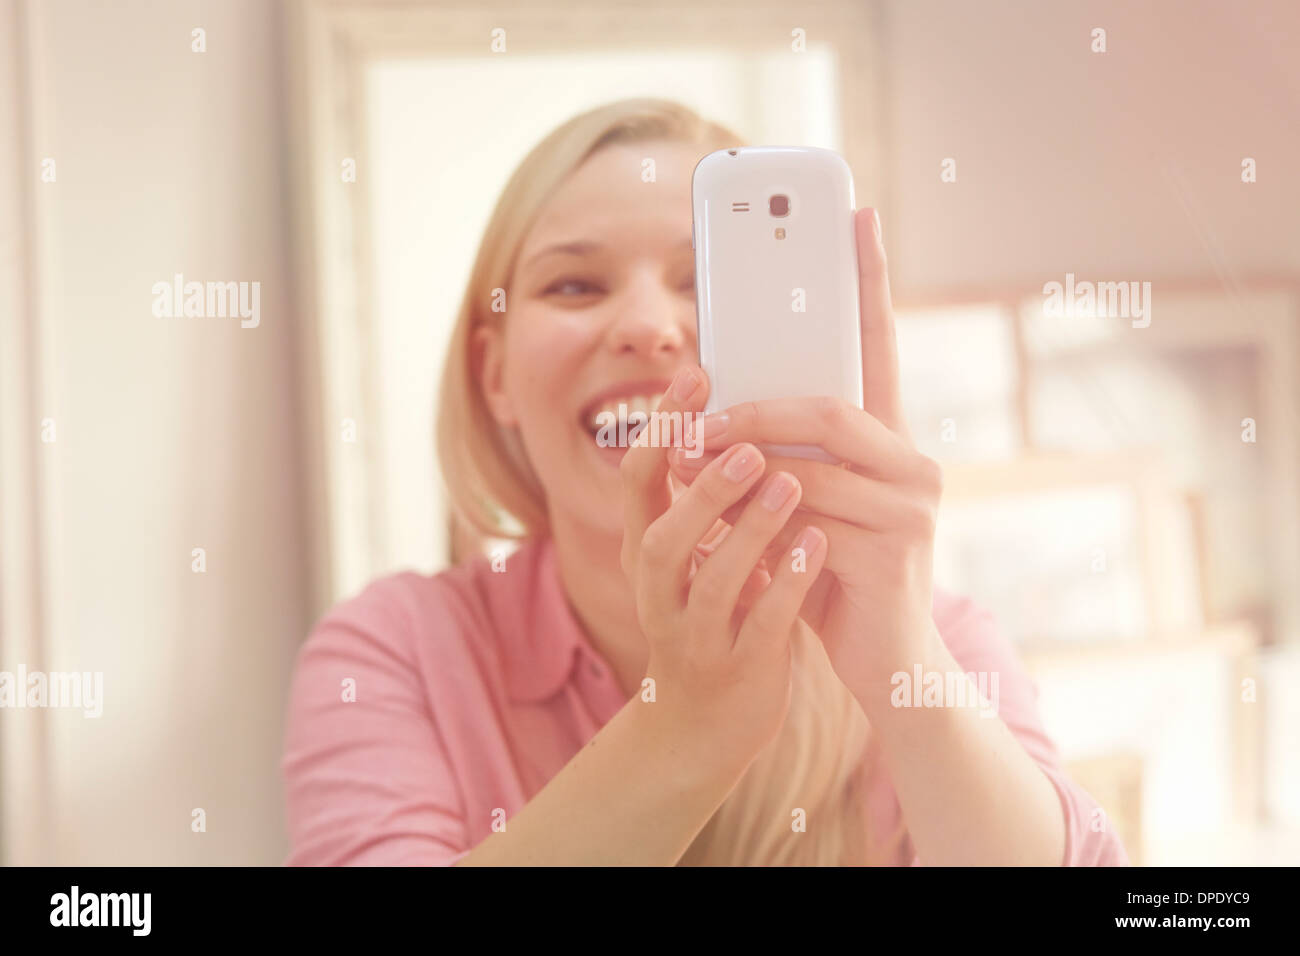 Young woman taking self portrait photograph using smartphone Photo Stock